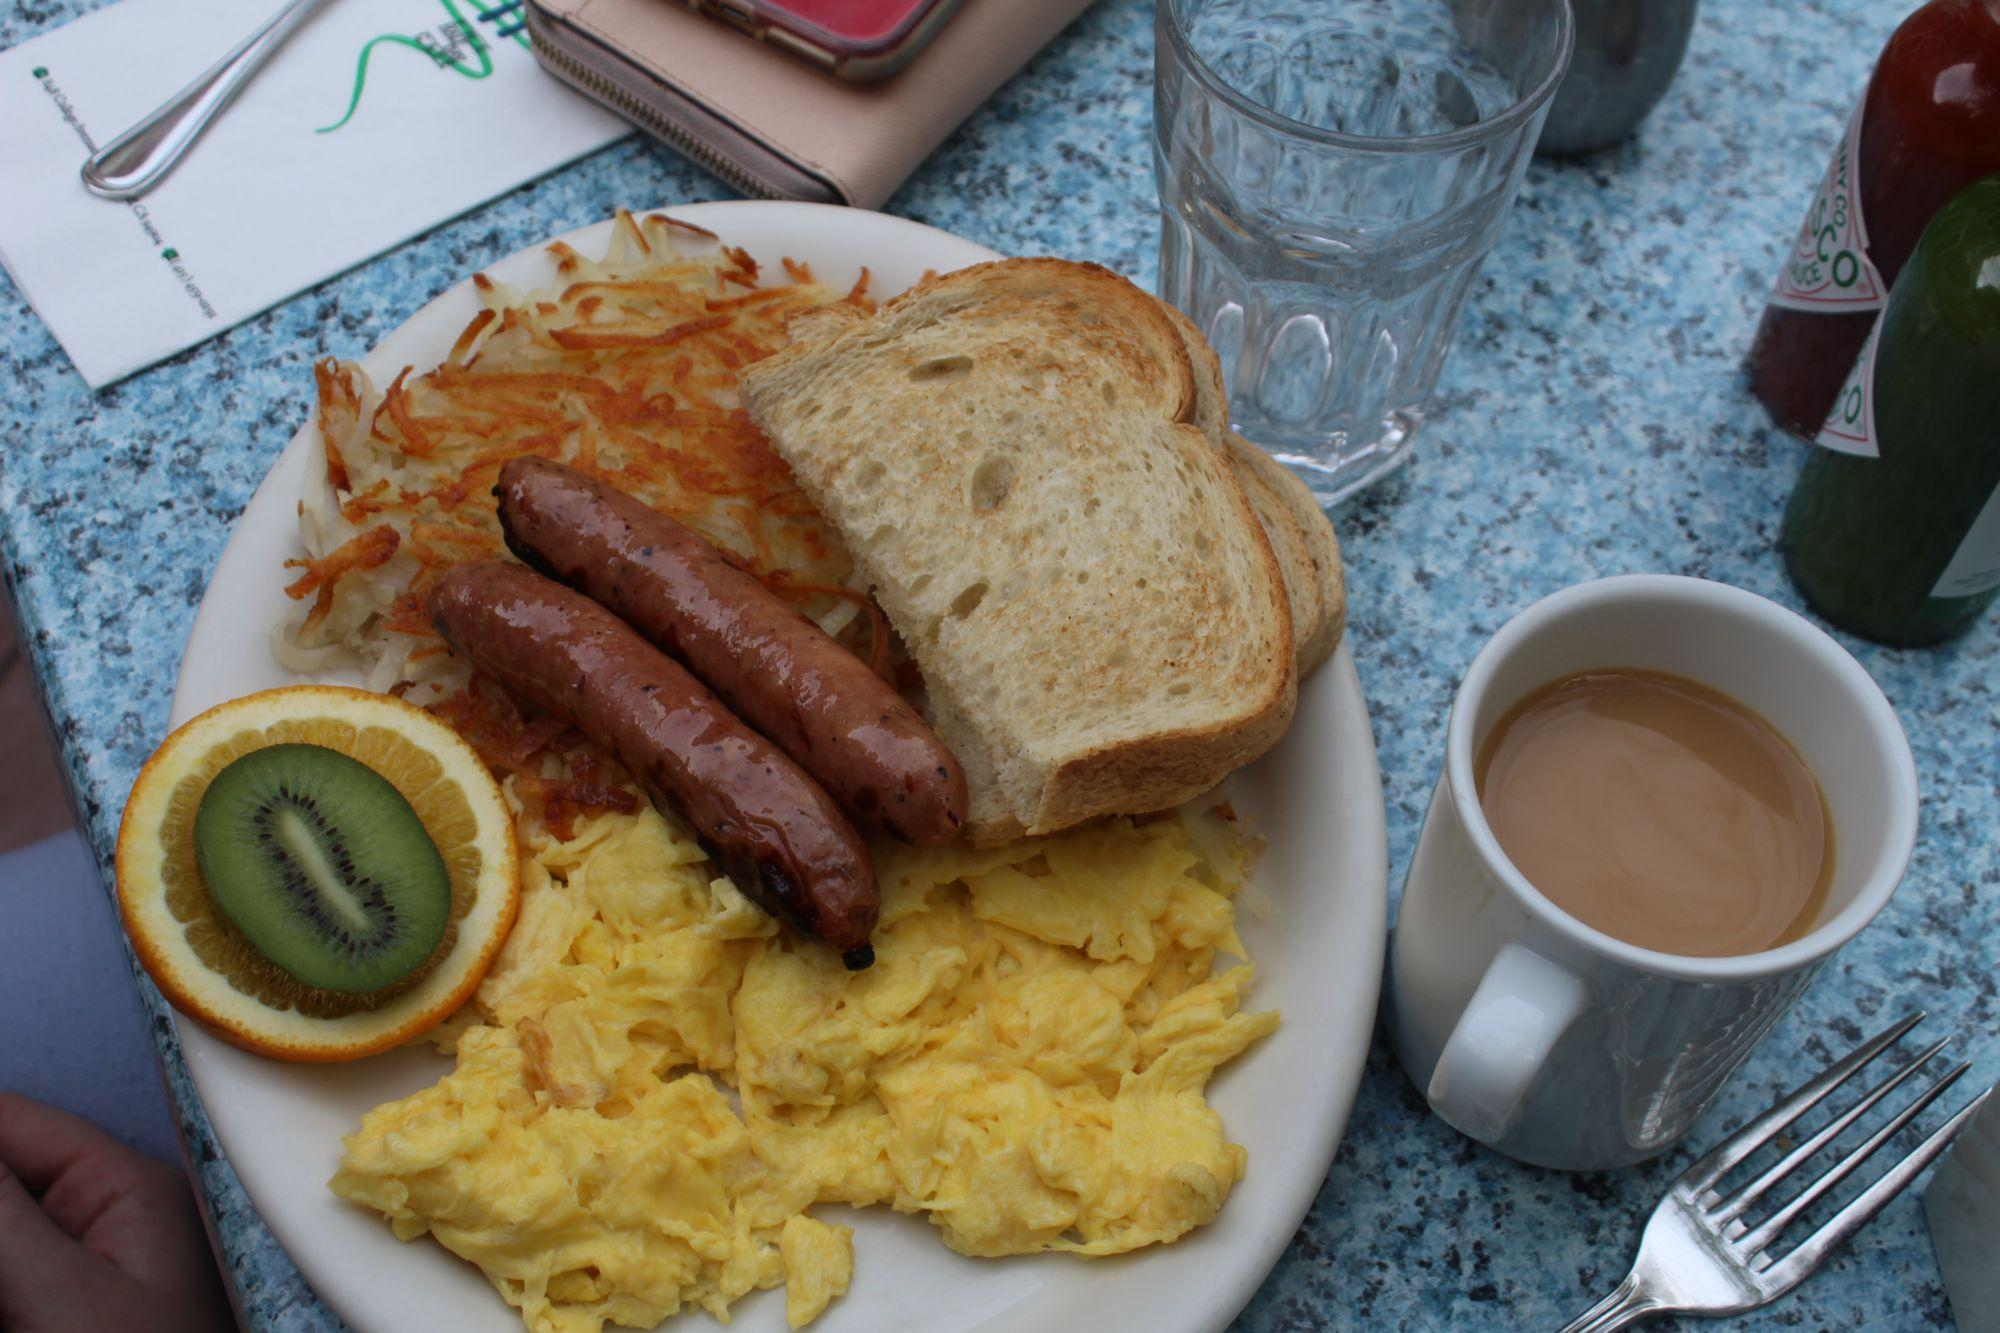 Marin's best weekend breakfast places to satisfy an empty stomach